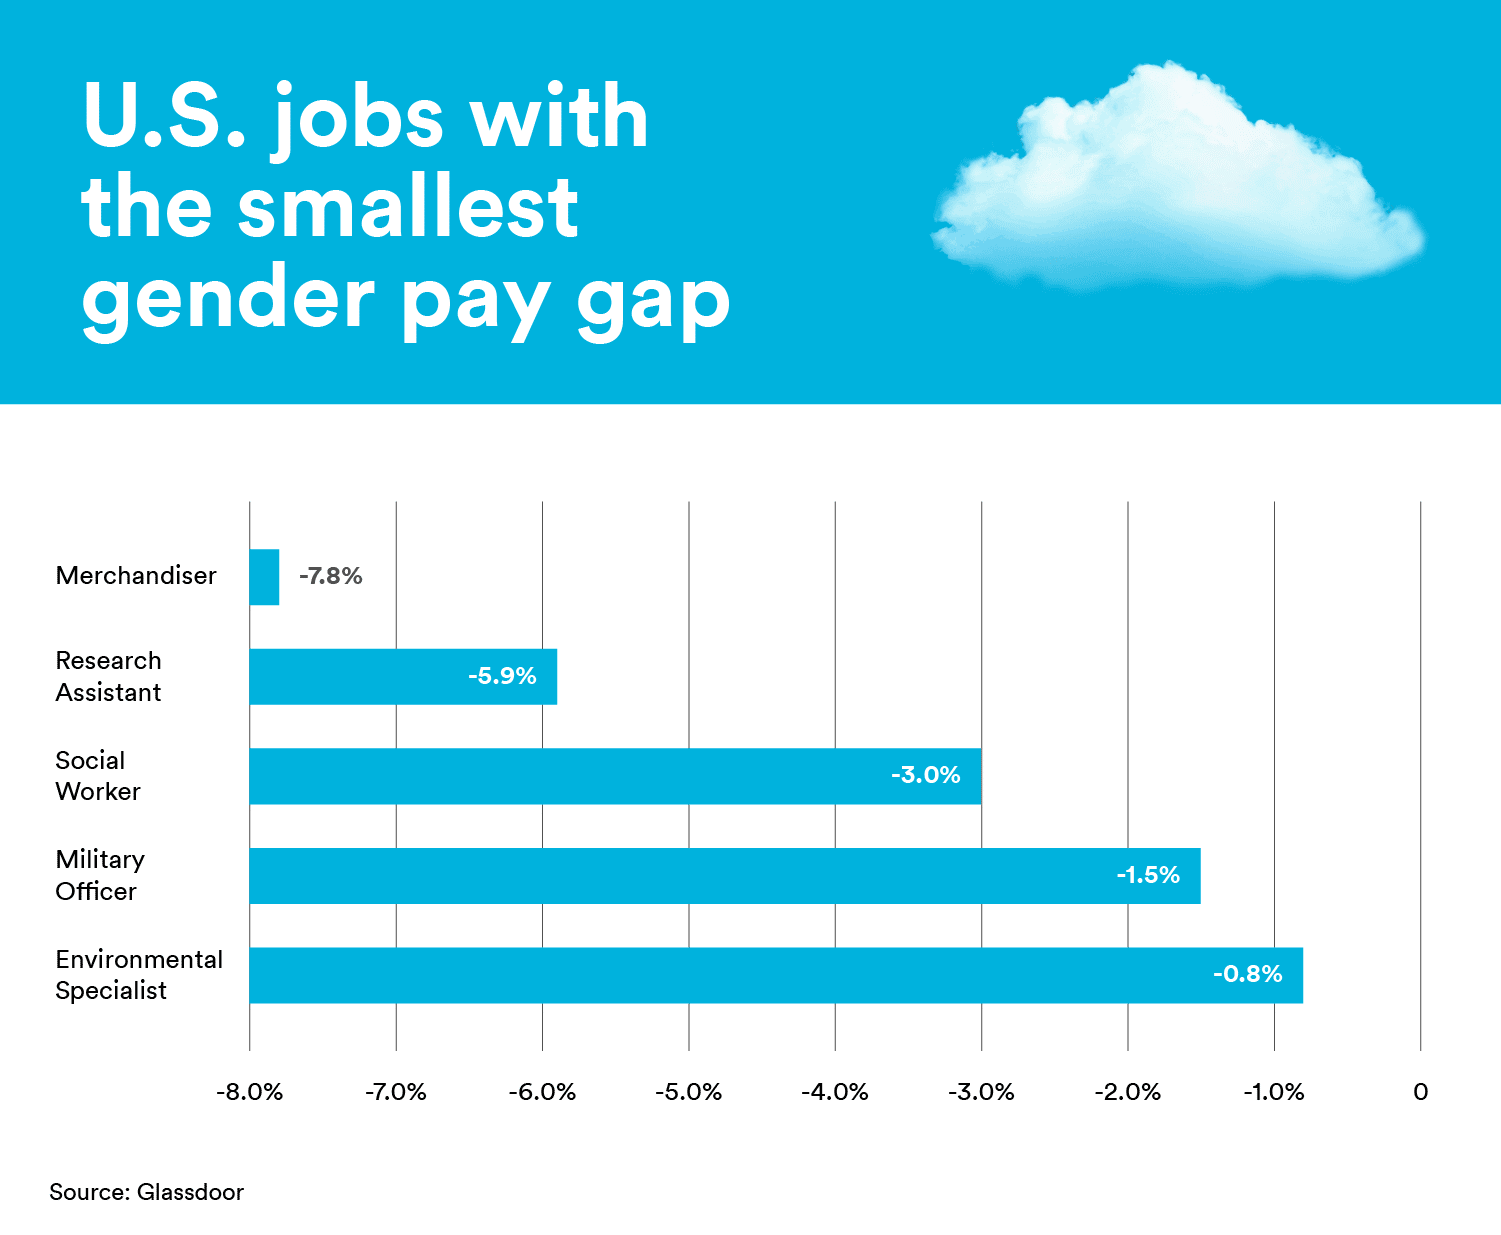 Jobs with the smallest gender pay gap